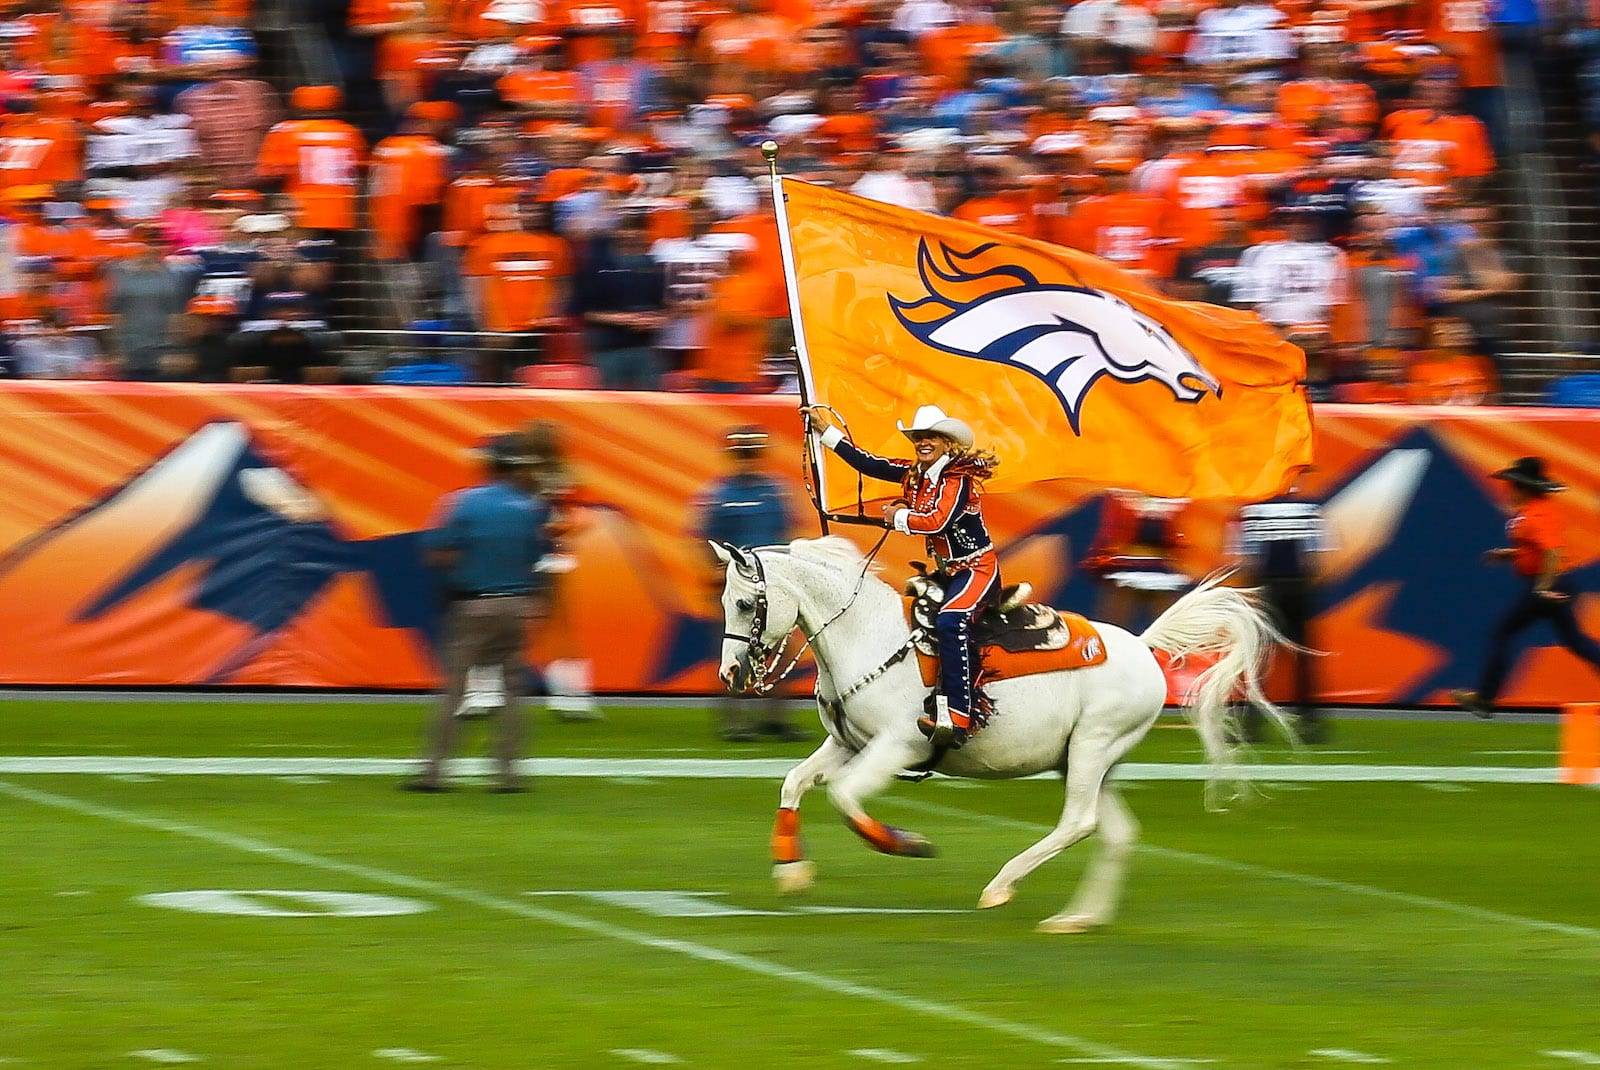 Mile High Stadium Horse Rider Broncos vs Chargers 2016